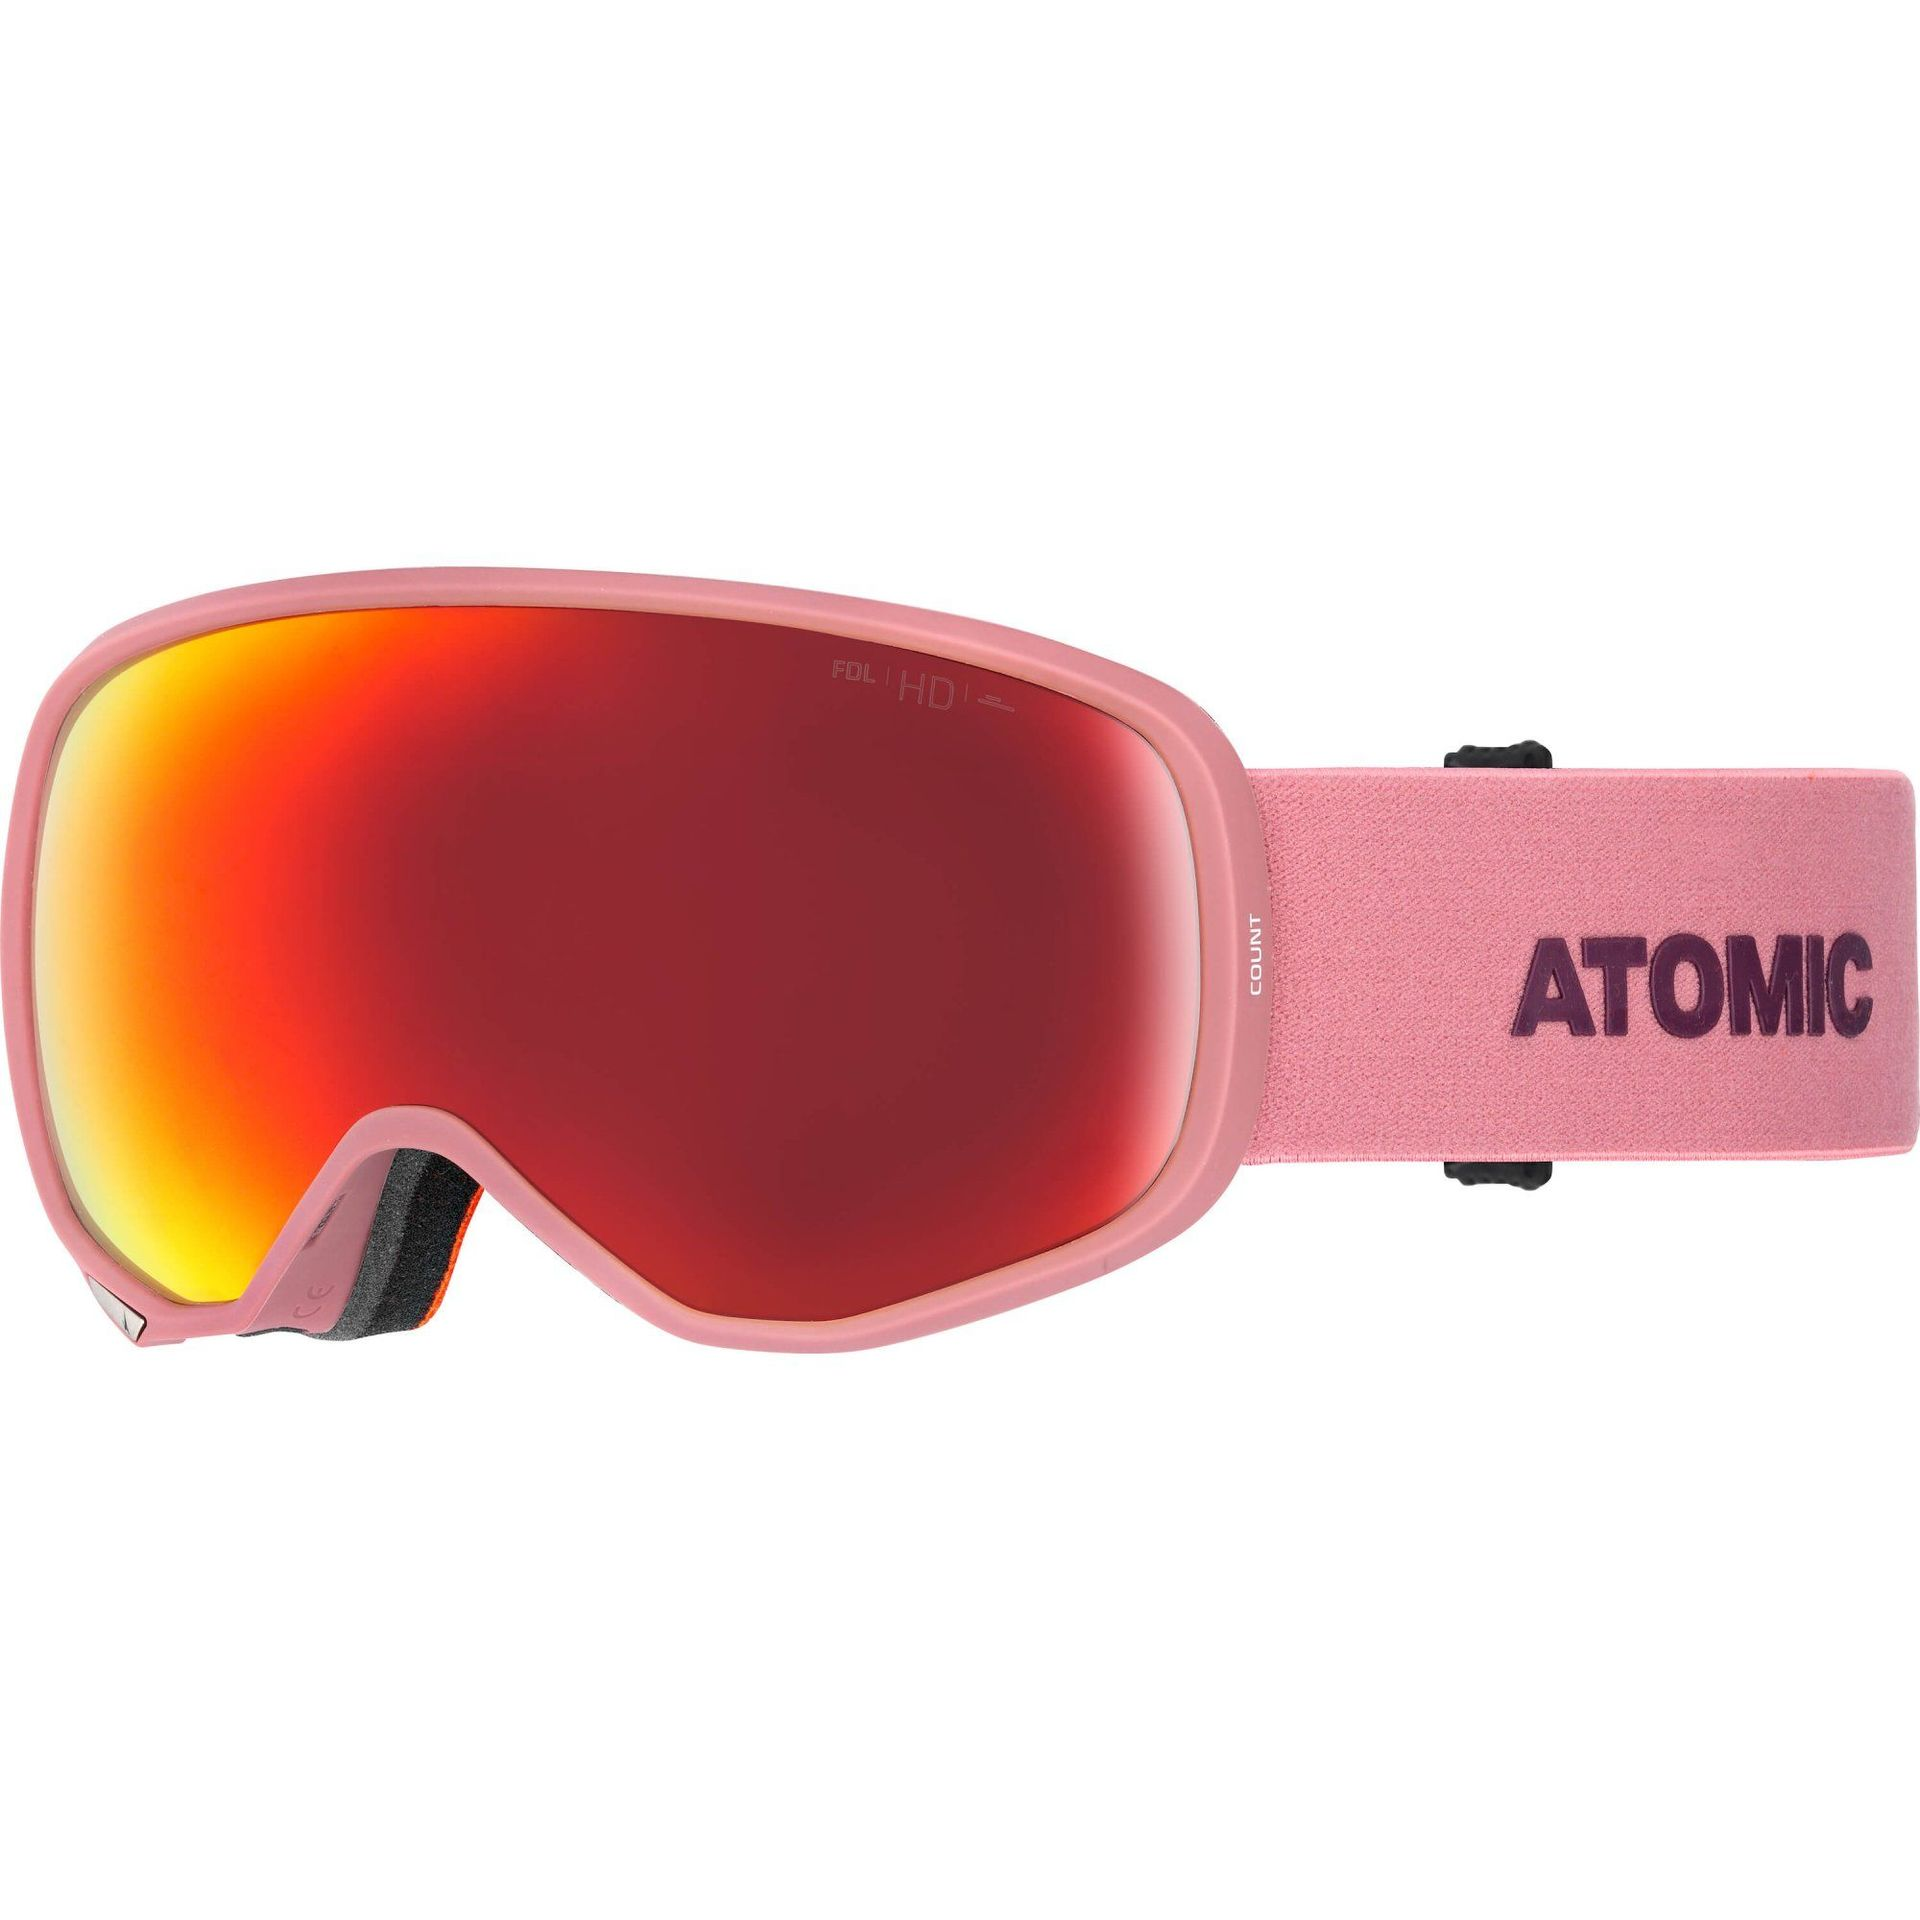 GOGLE ATOMIC COUNT S 360° HD ROSE|NIGHTSHADE|RED HD AN5105778